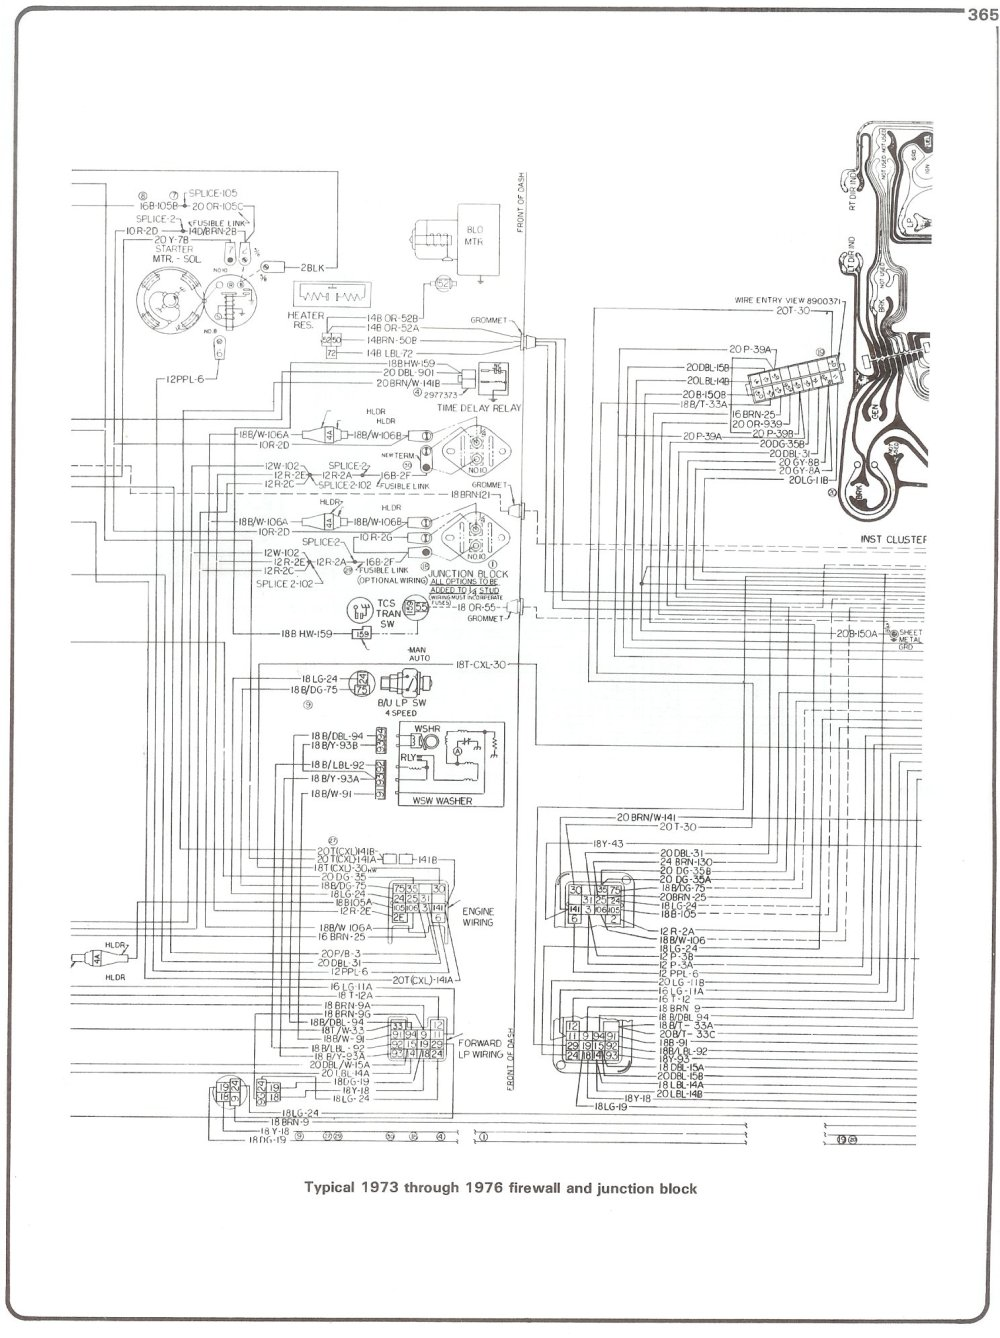 medium resolution of 1978 gmc van fuse box wiring diagram used 1978 gmc van fuse box